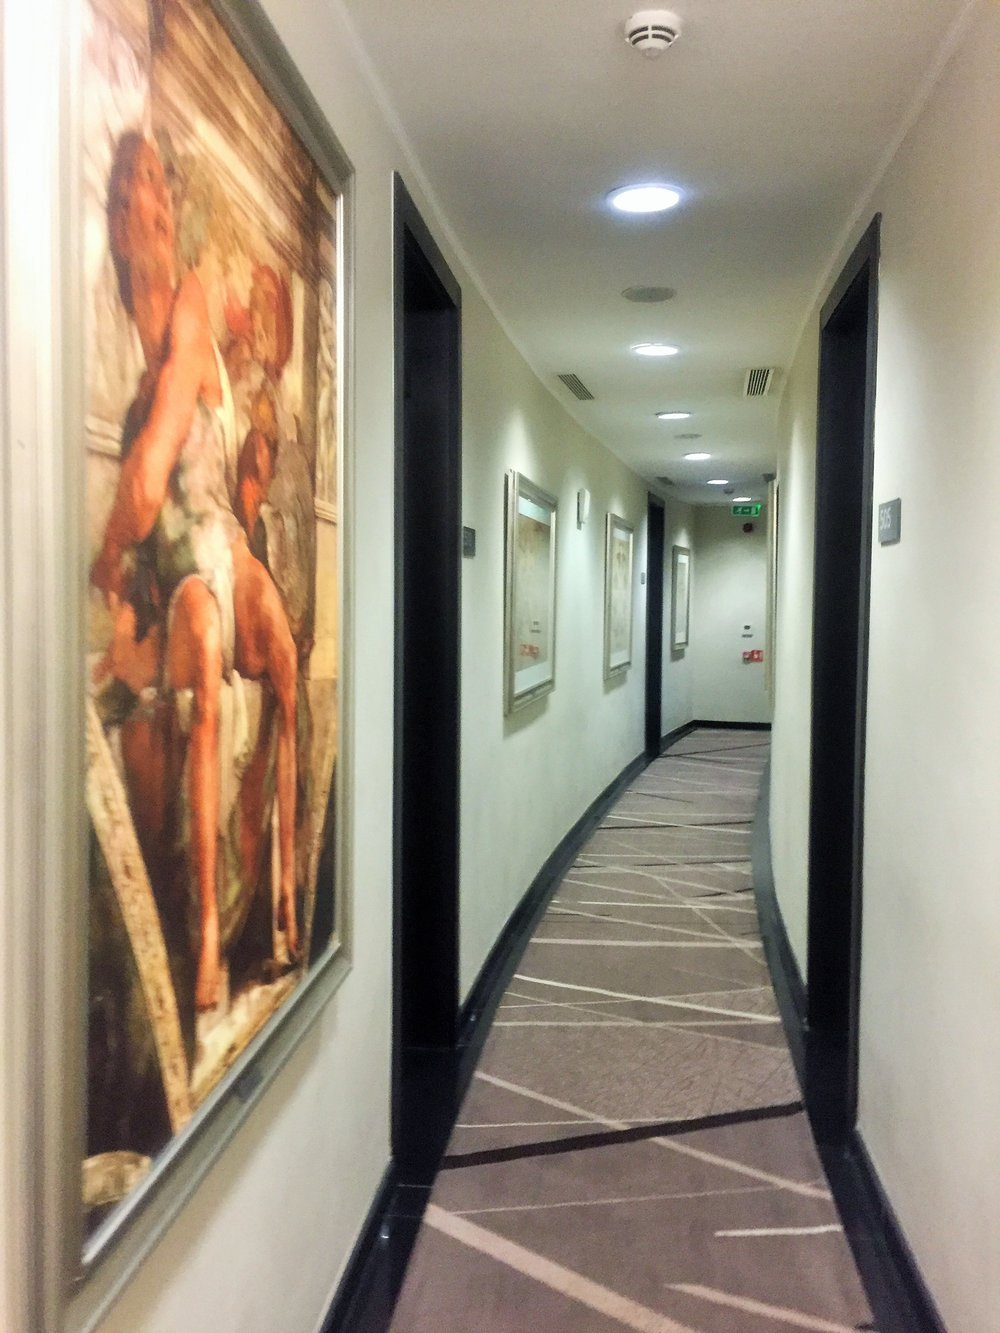 The corridor of the 5th floor